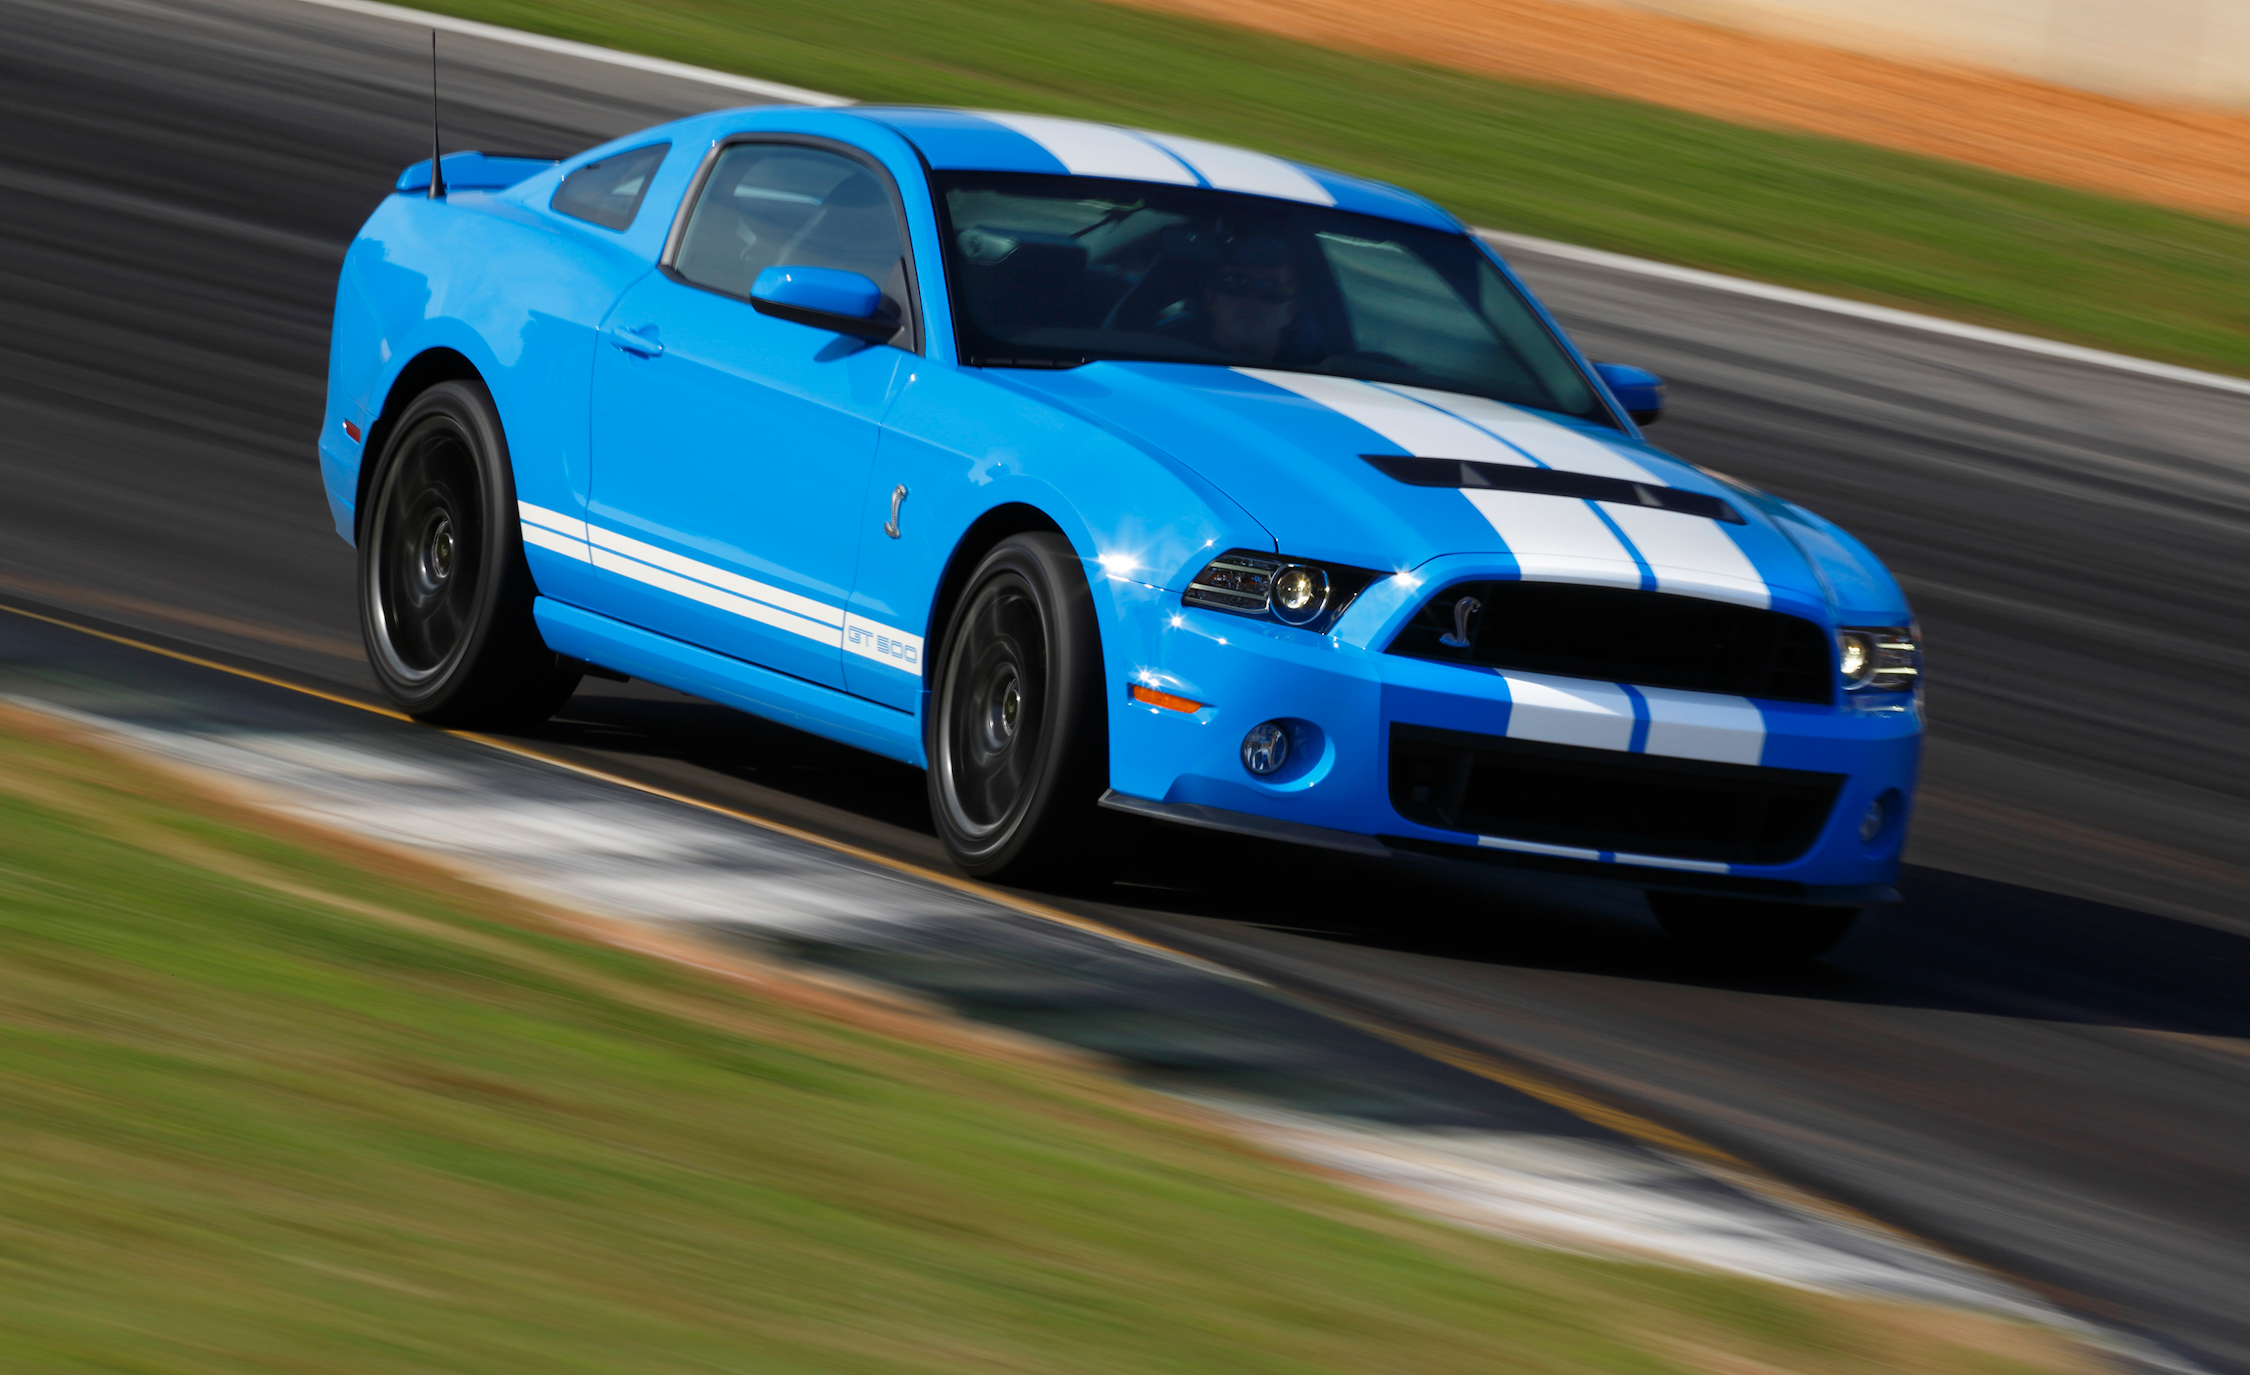 2013 Ford Mustang Shelby GT500 Blue Test Drive Performance (Photo 15 of 47)